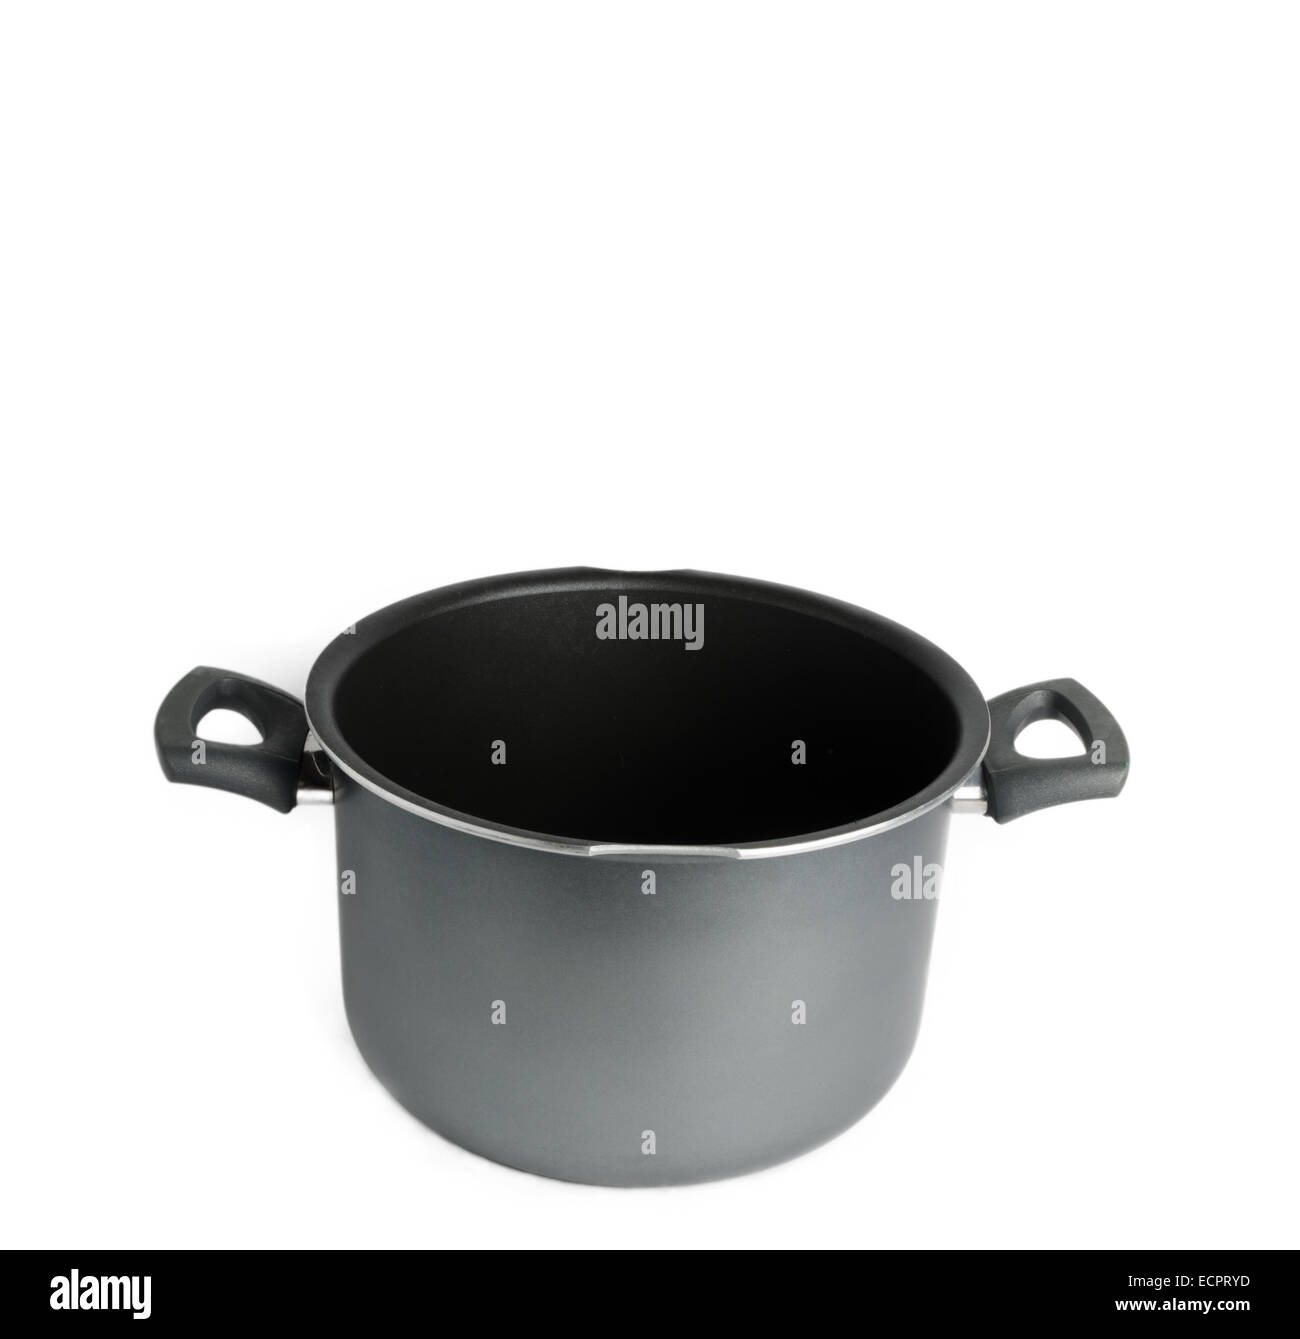 Empty cooking pot isolated on white background - Stock Image